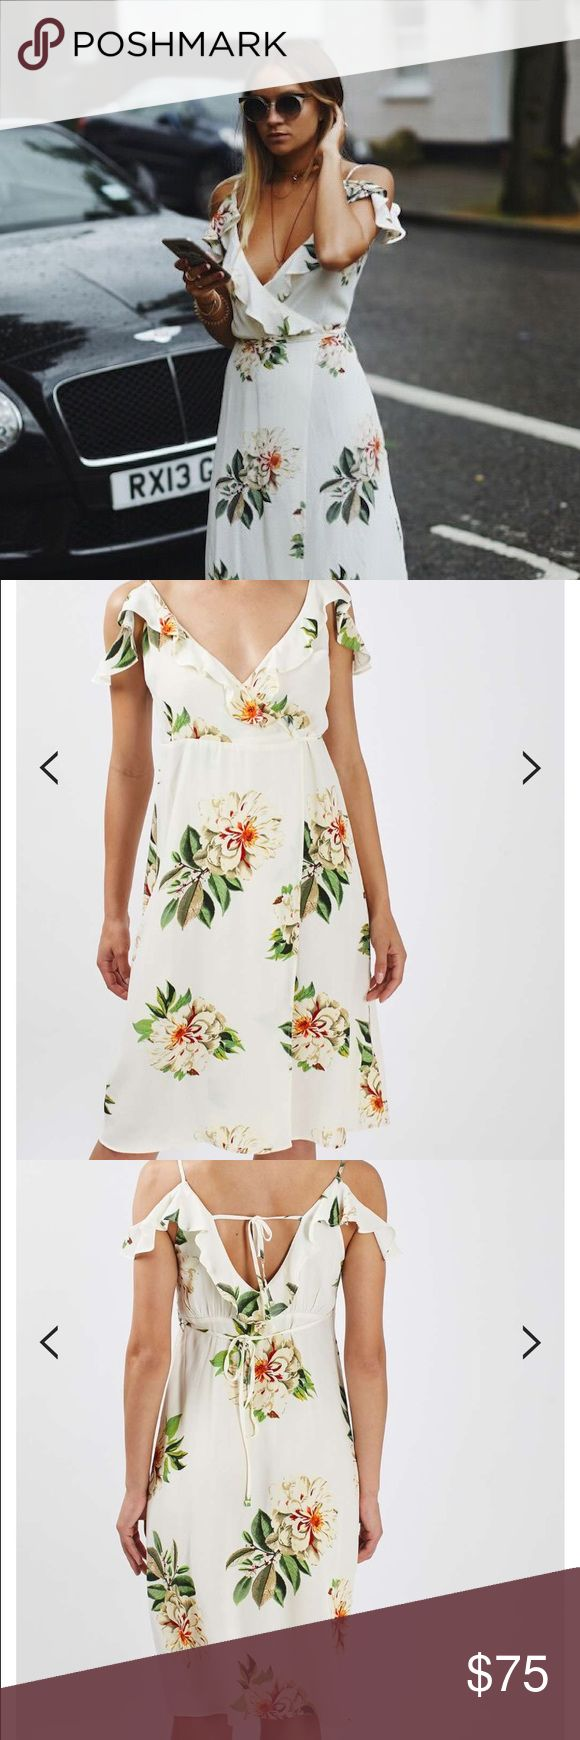 Topshop Floral Print Wrap Dress Topshop floral midi dress with shoulder cut out detail. Hits below the knee. Never been worn! Topshop PETITE Dresses Midi